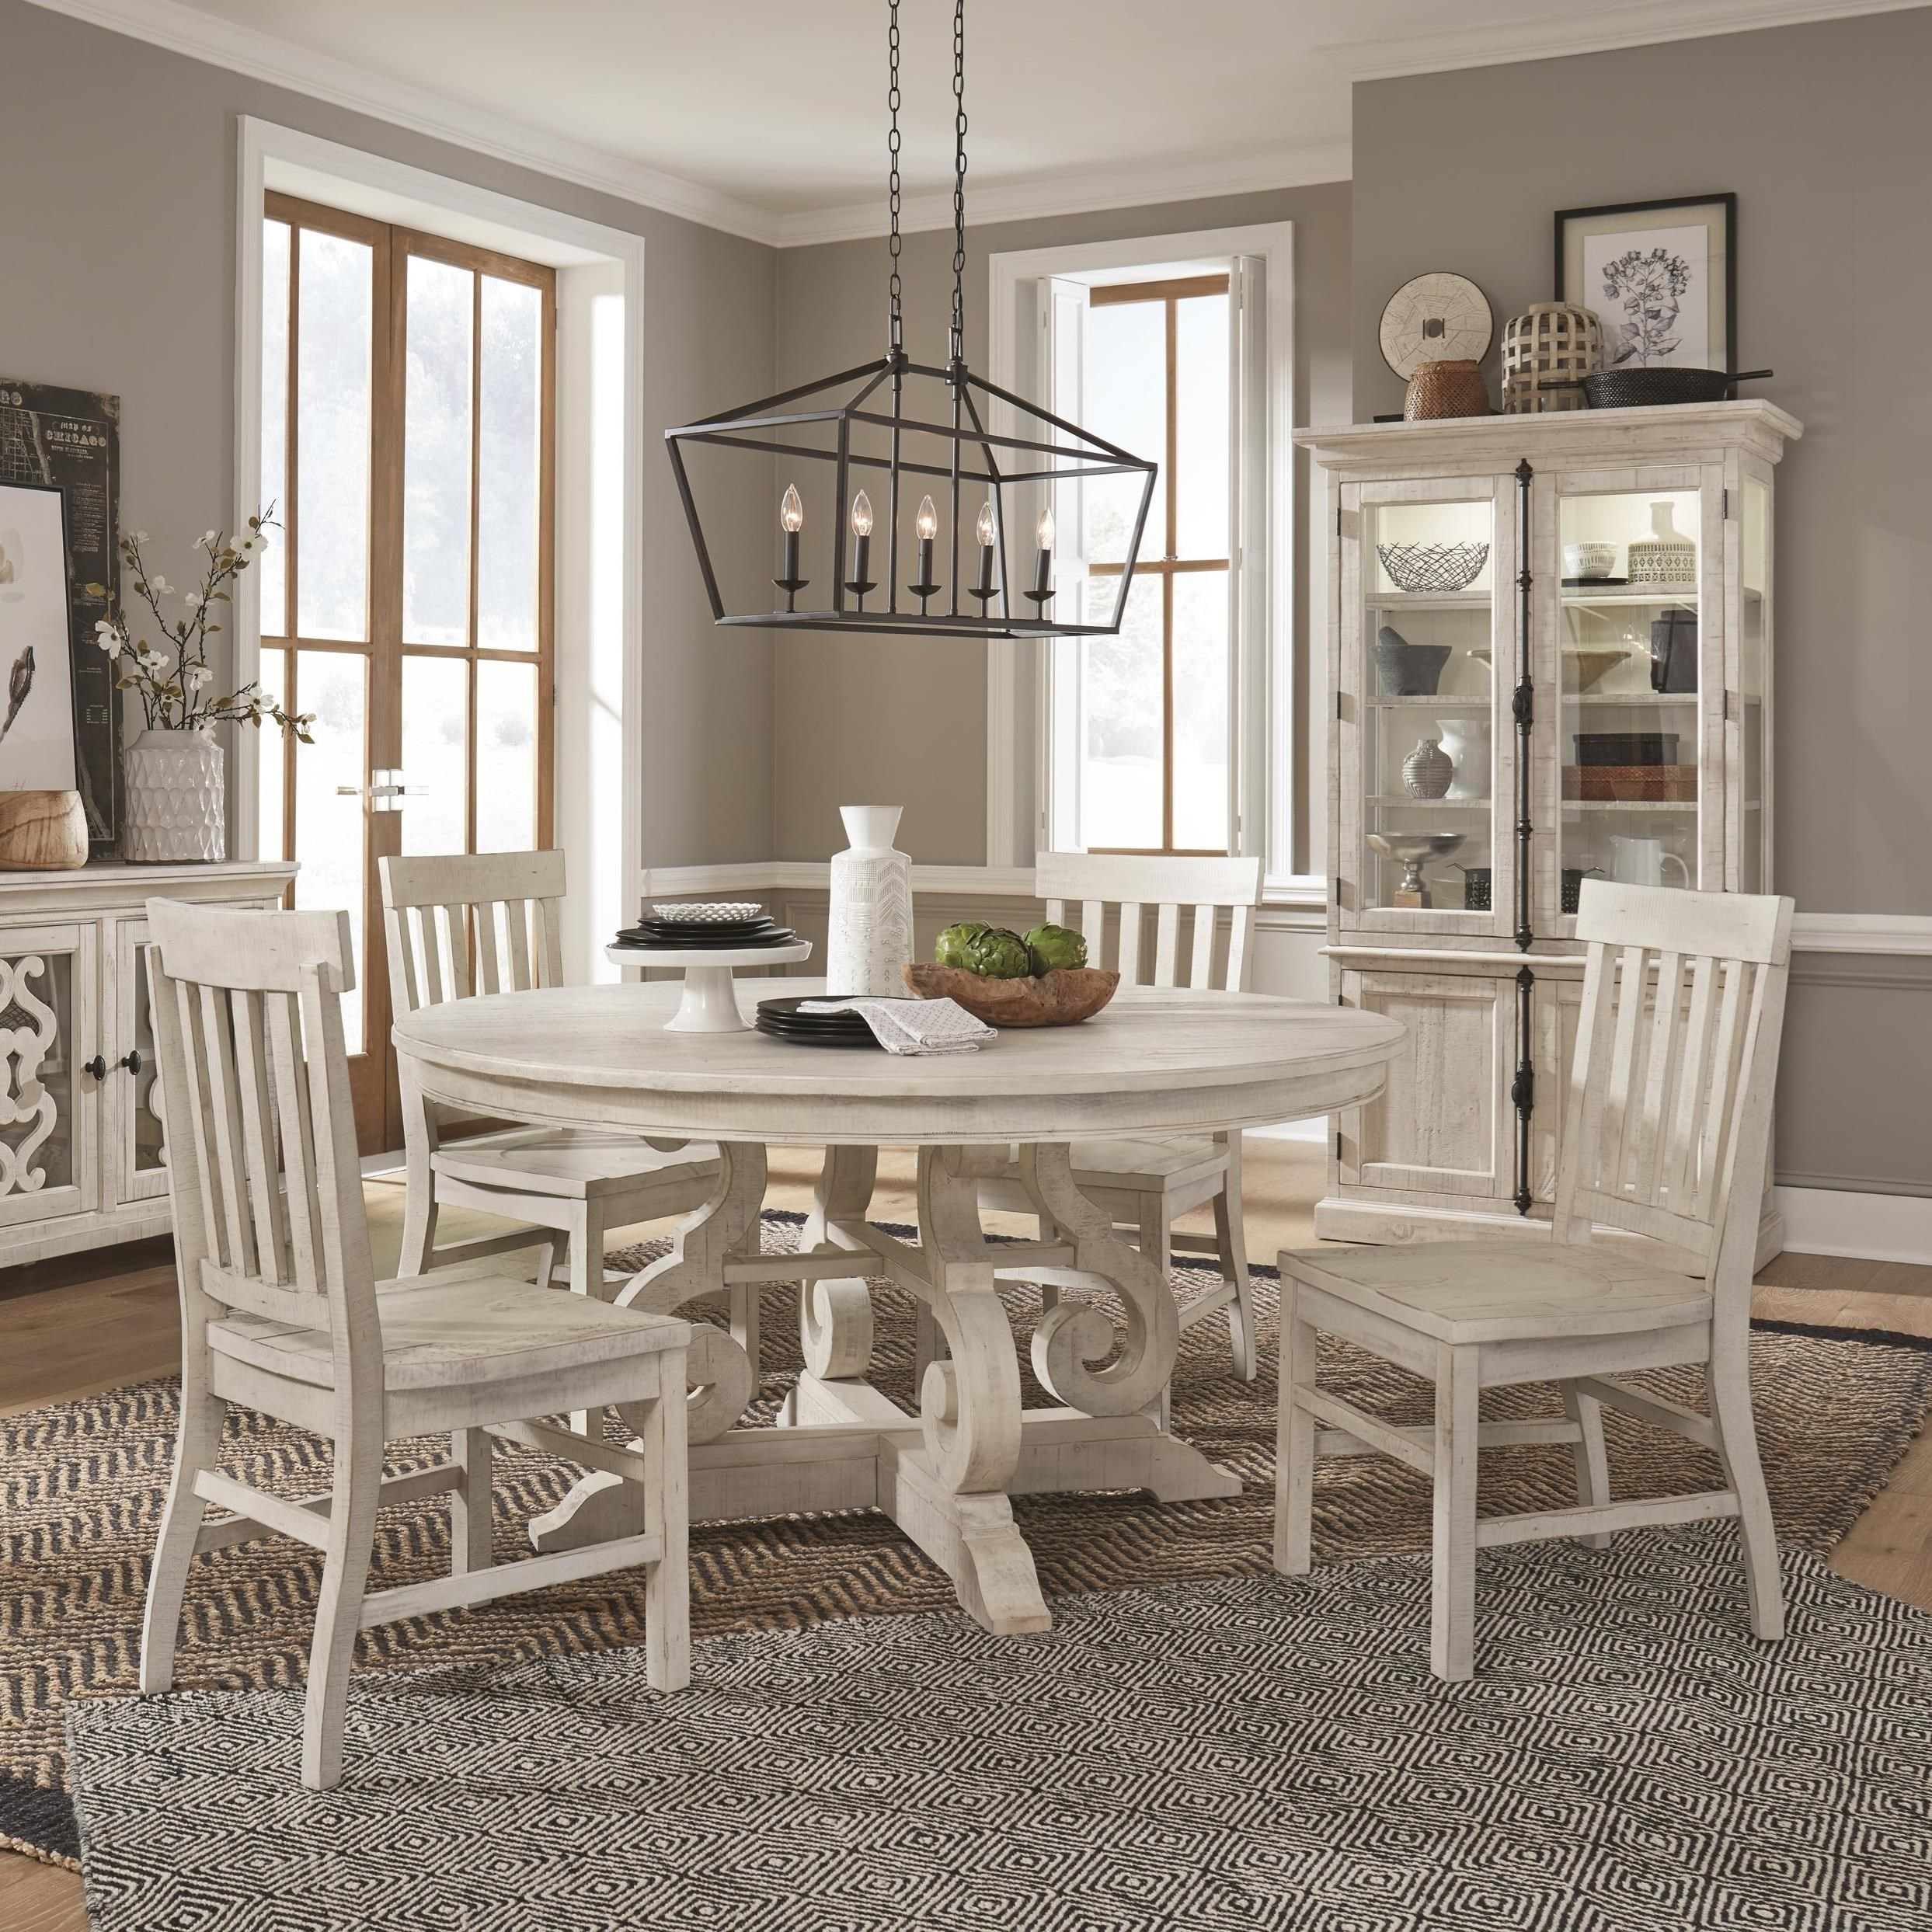 Picture of: Magnussen Home Bronwyn 5 Piece Farmhouse Dining Set With Round Table Reeds Furniture Dining 5 Piece Sets